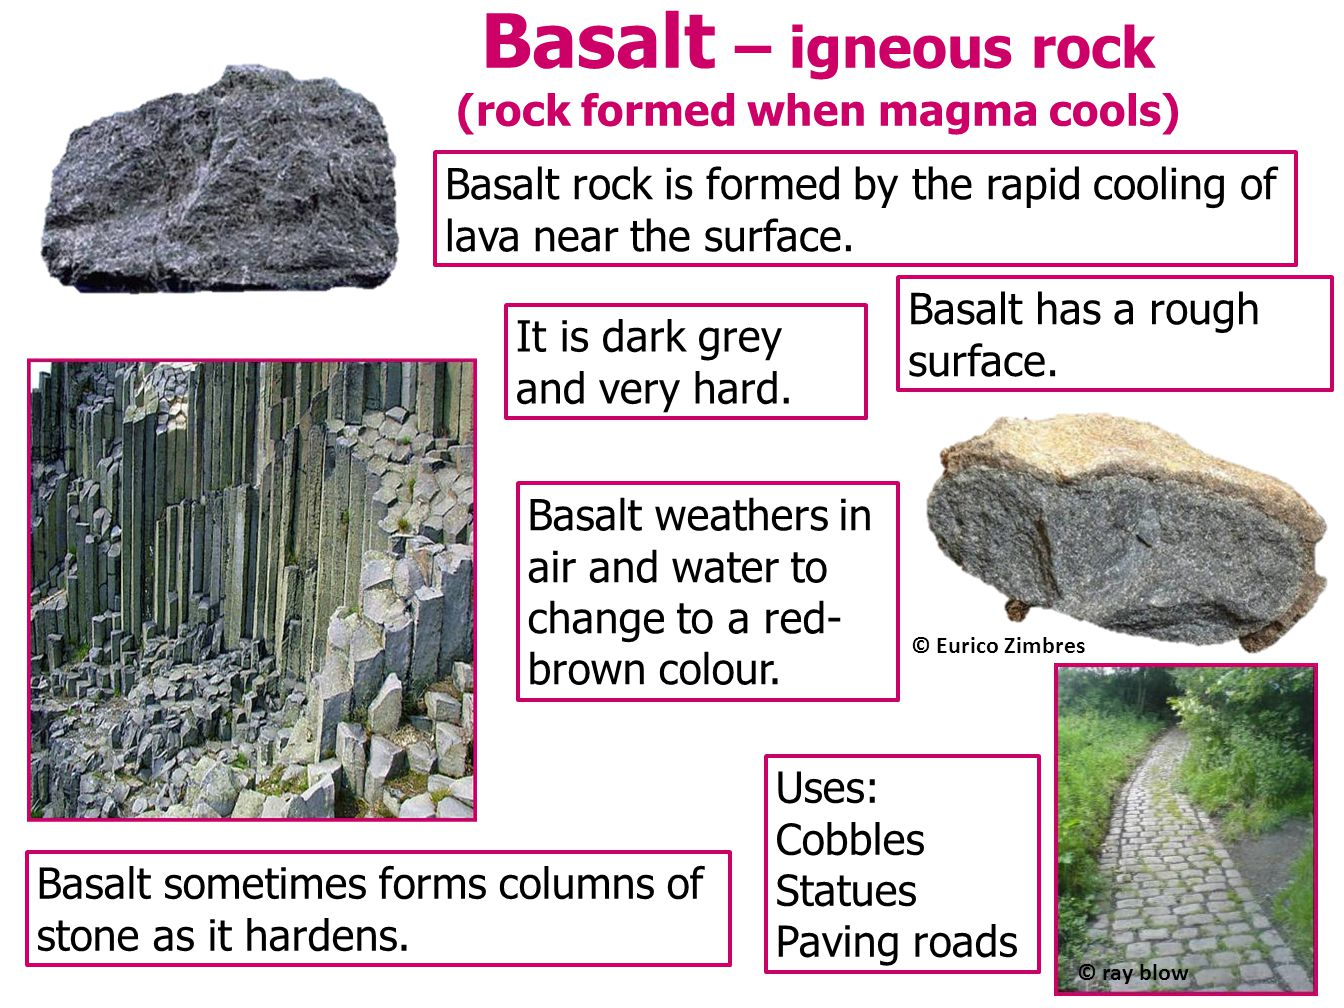 Basalt – igneous rock (rock formed when magma cools) Basalt rock is formed by the rapid cooling of lava near the surface. Uses: Cobbles Statues Paving